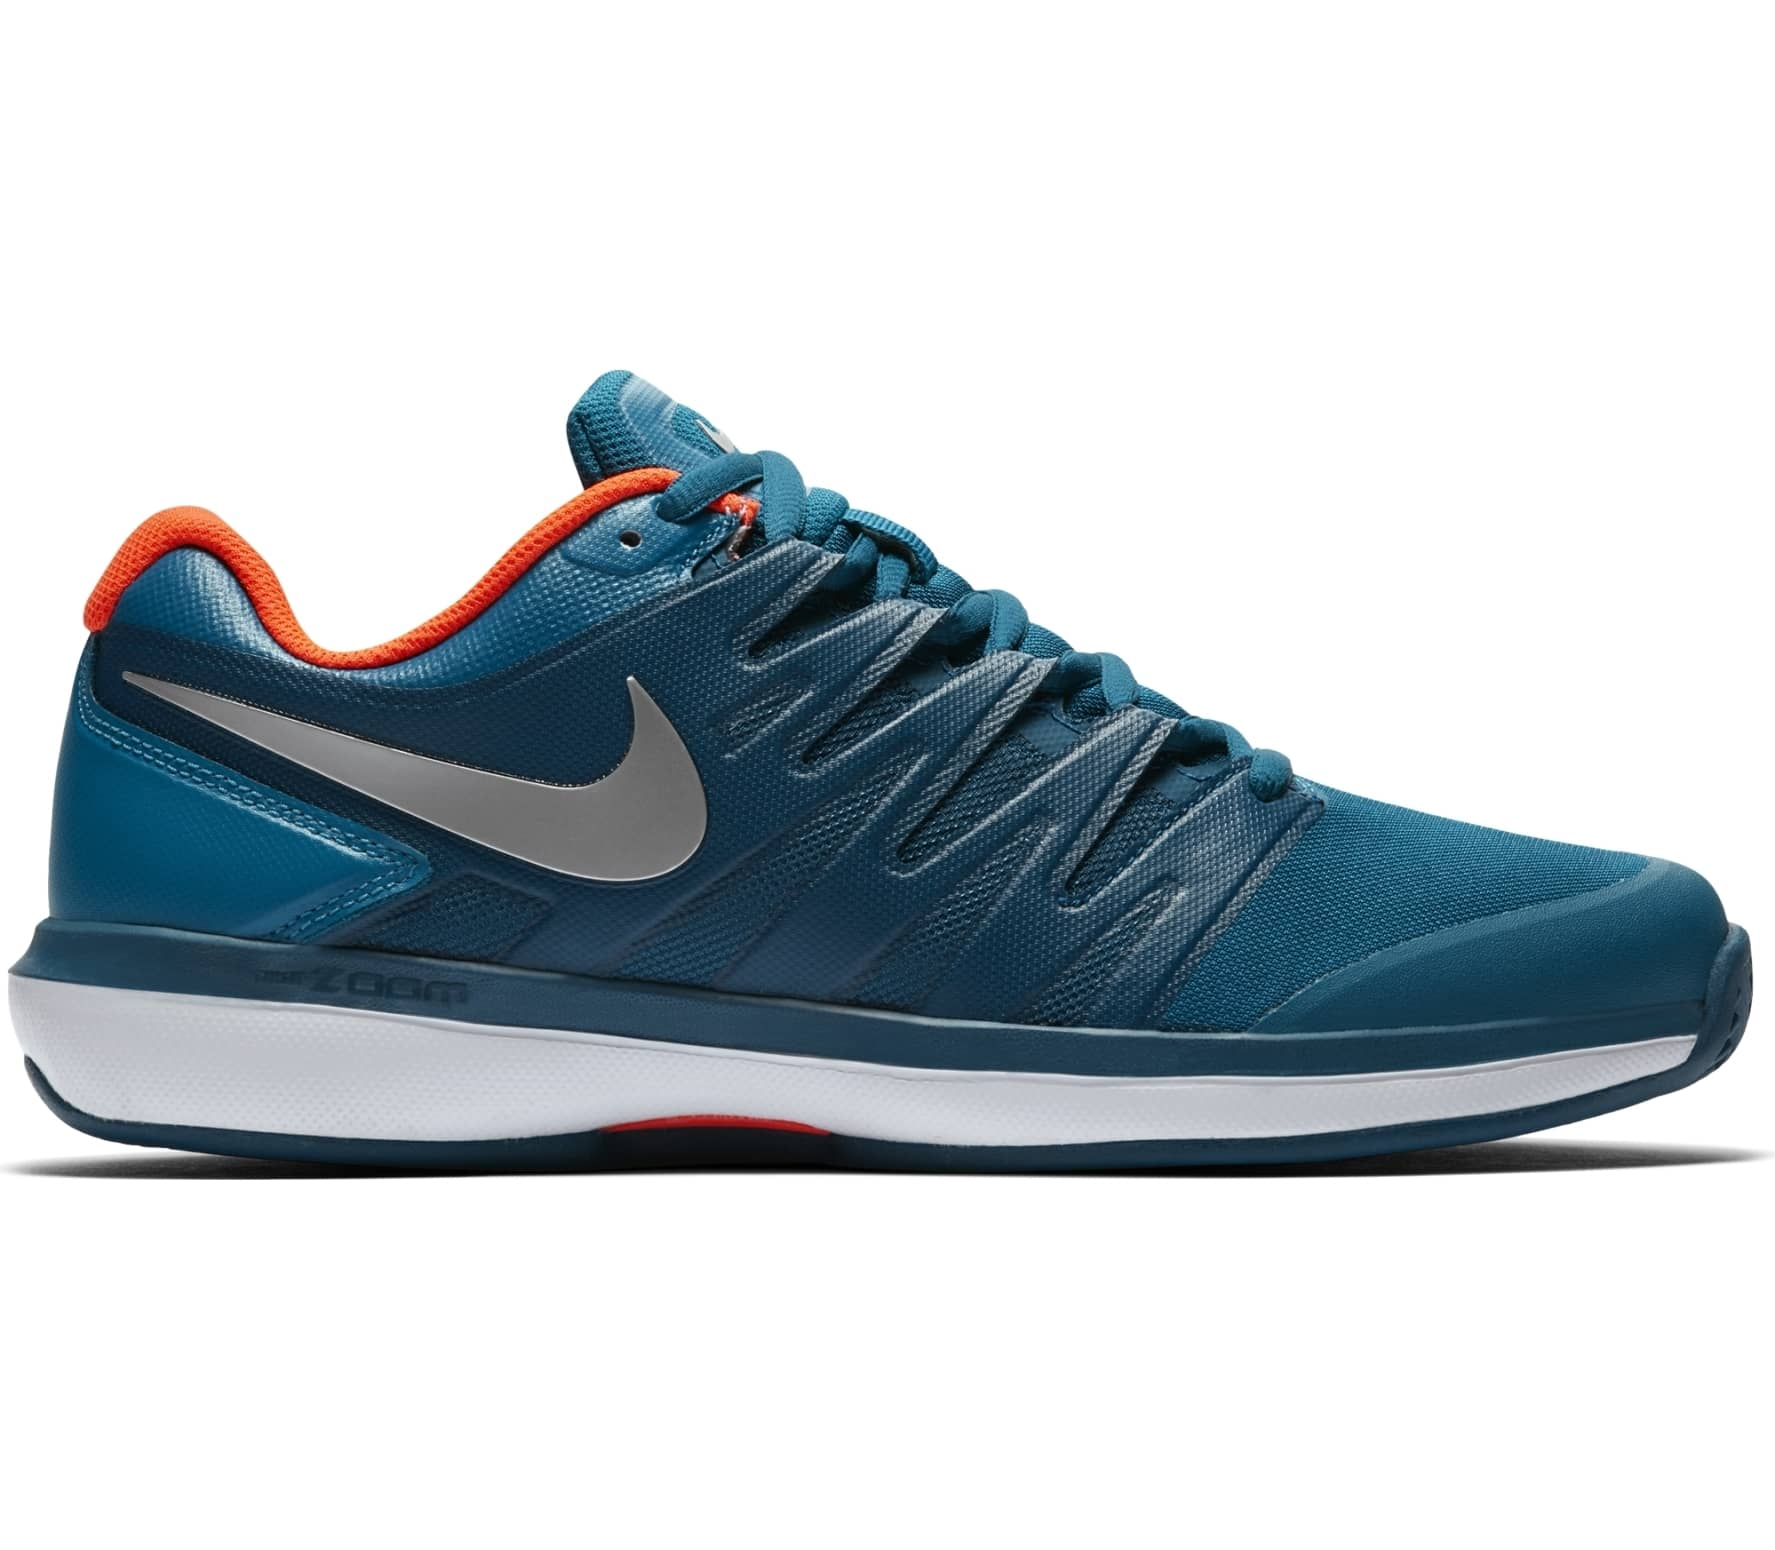 83376fe34 Nike - Air Zoom Prestige Clay men s tennis shoes (dark blue orange ...